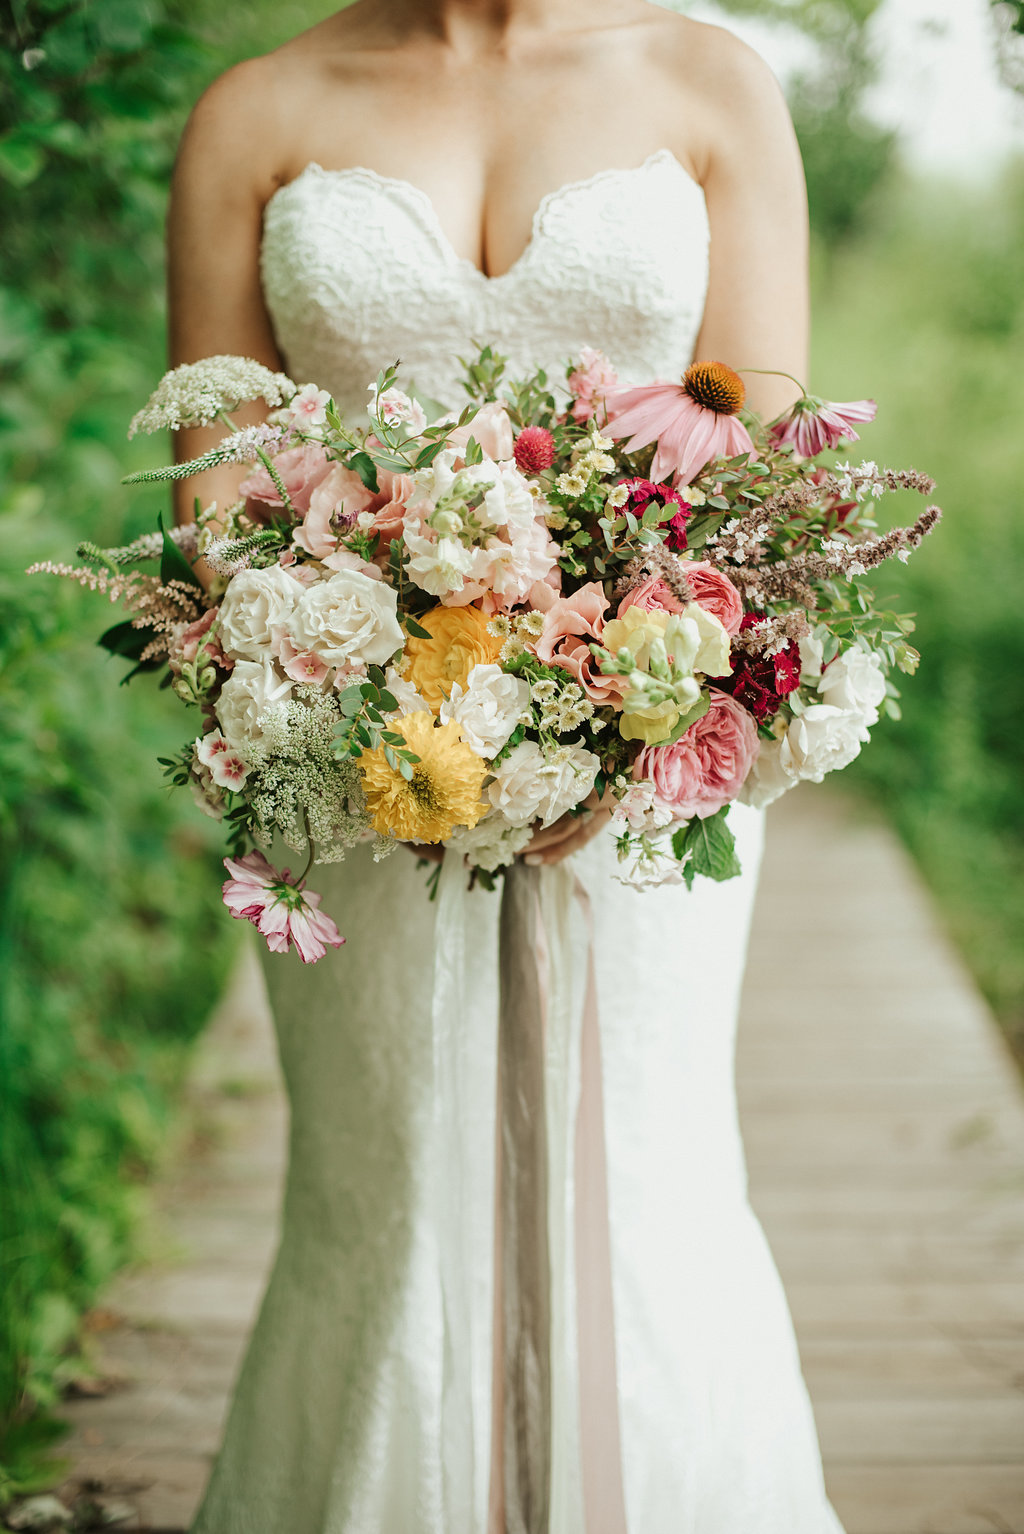 Watershed_Floral_Summer_Maine_Wedding_072818_KJ-70.jpg